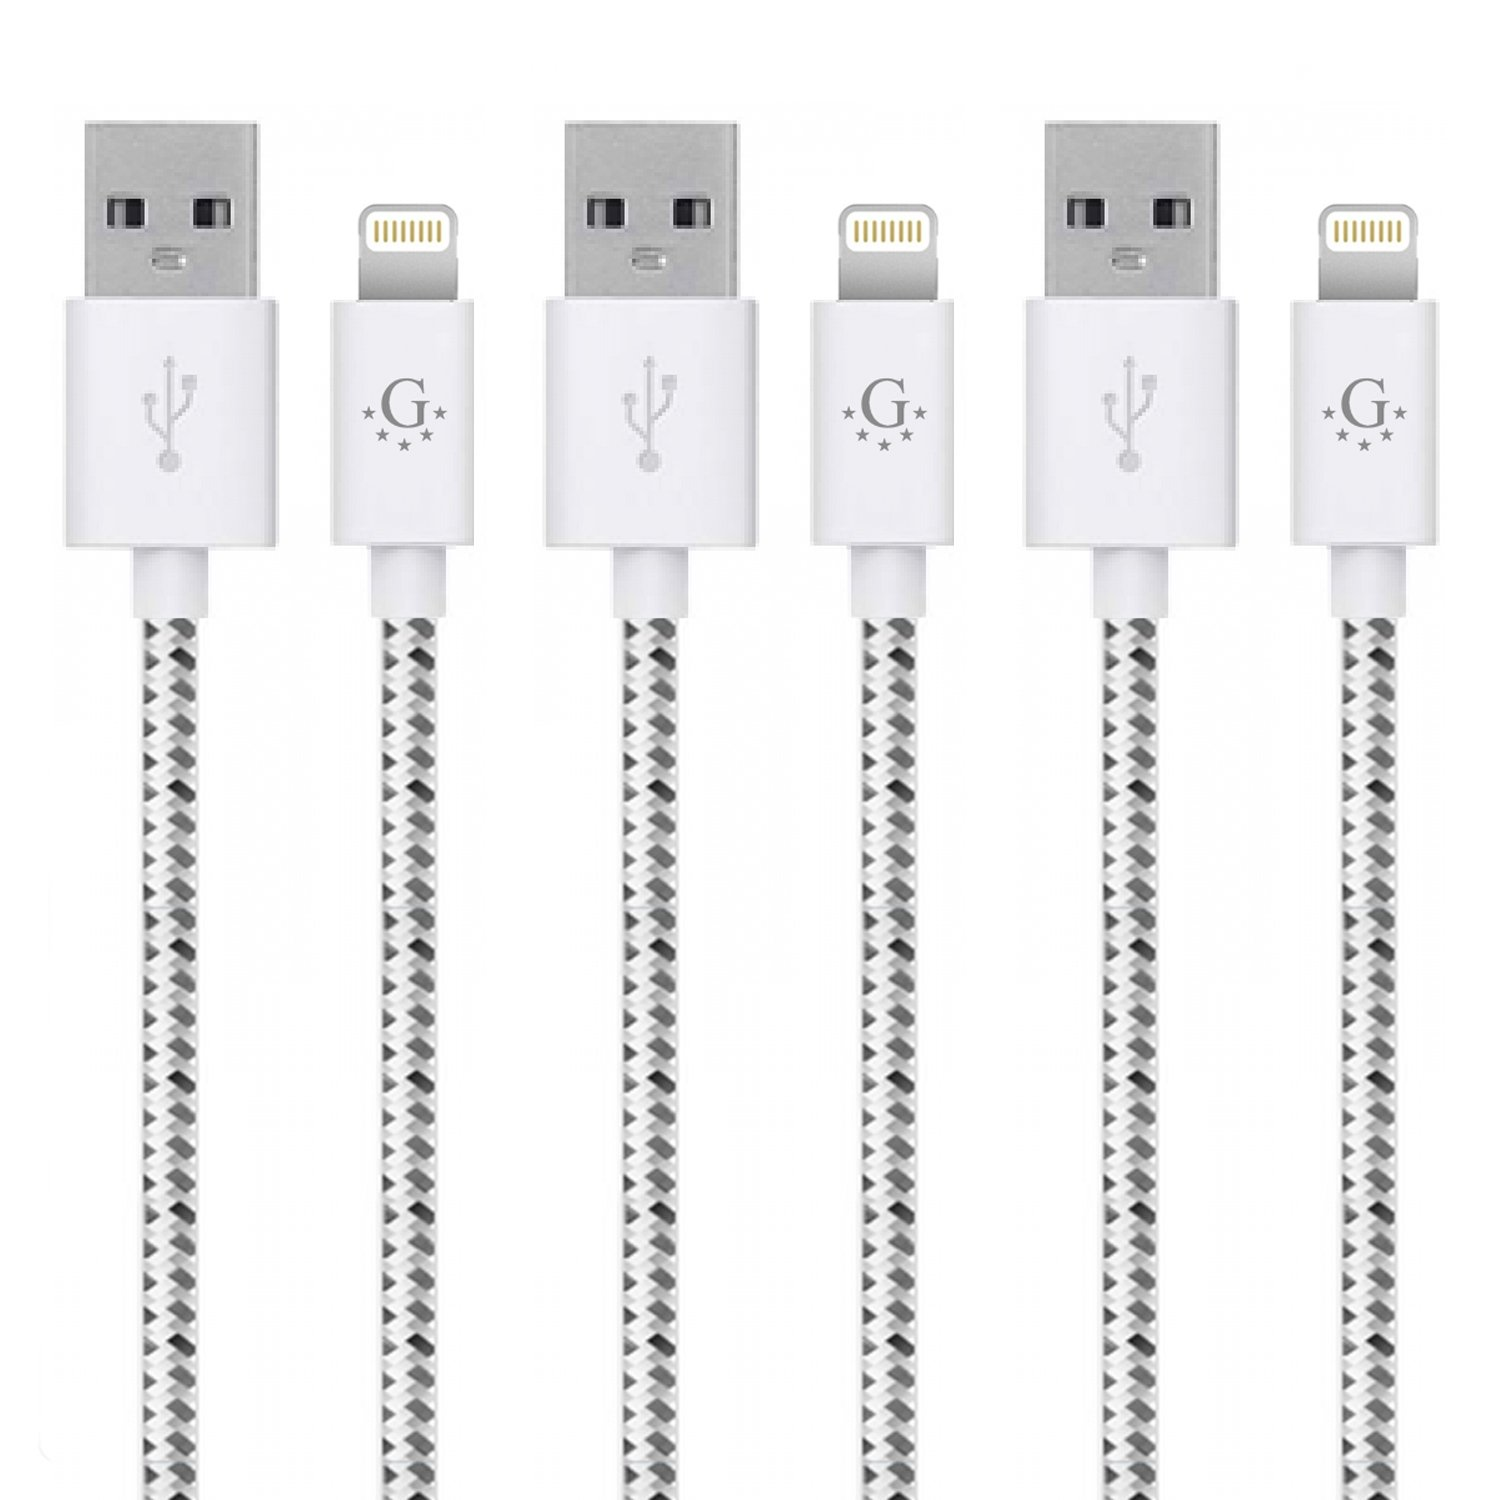 Go Beyond(TM) 3 Feet 8 Pin Fabric Braided Nylon Premium Durable iPhone 5/6 Data Sync / Charging Cable for iPhone 6/6 Plus, iPhone 5/5S/5C , iPad Mini, iPod Touch 5th Generation (SHIPPED IN SAME BUSINESS DAY. Compatible with NEW iOS) (Bundle of 3 White Nyl